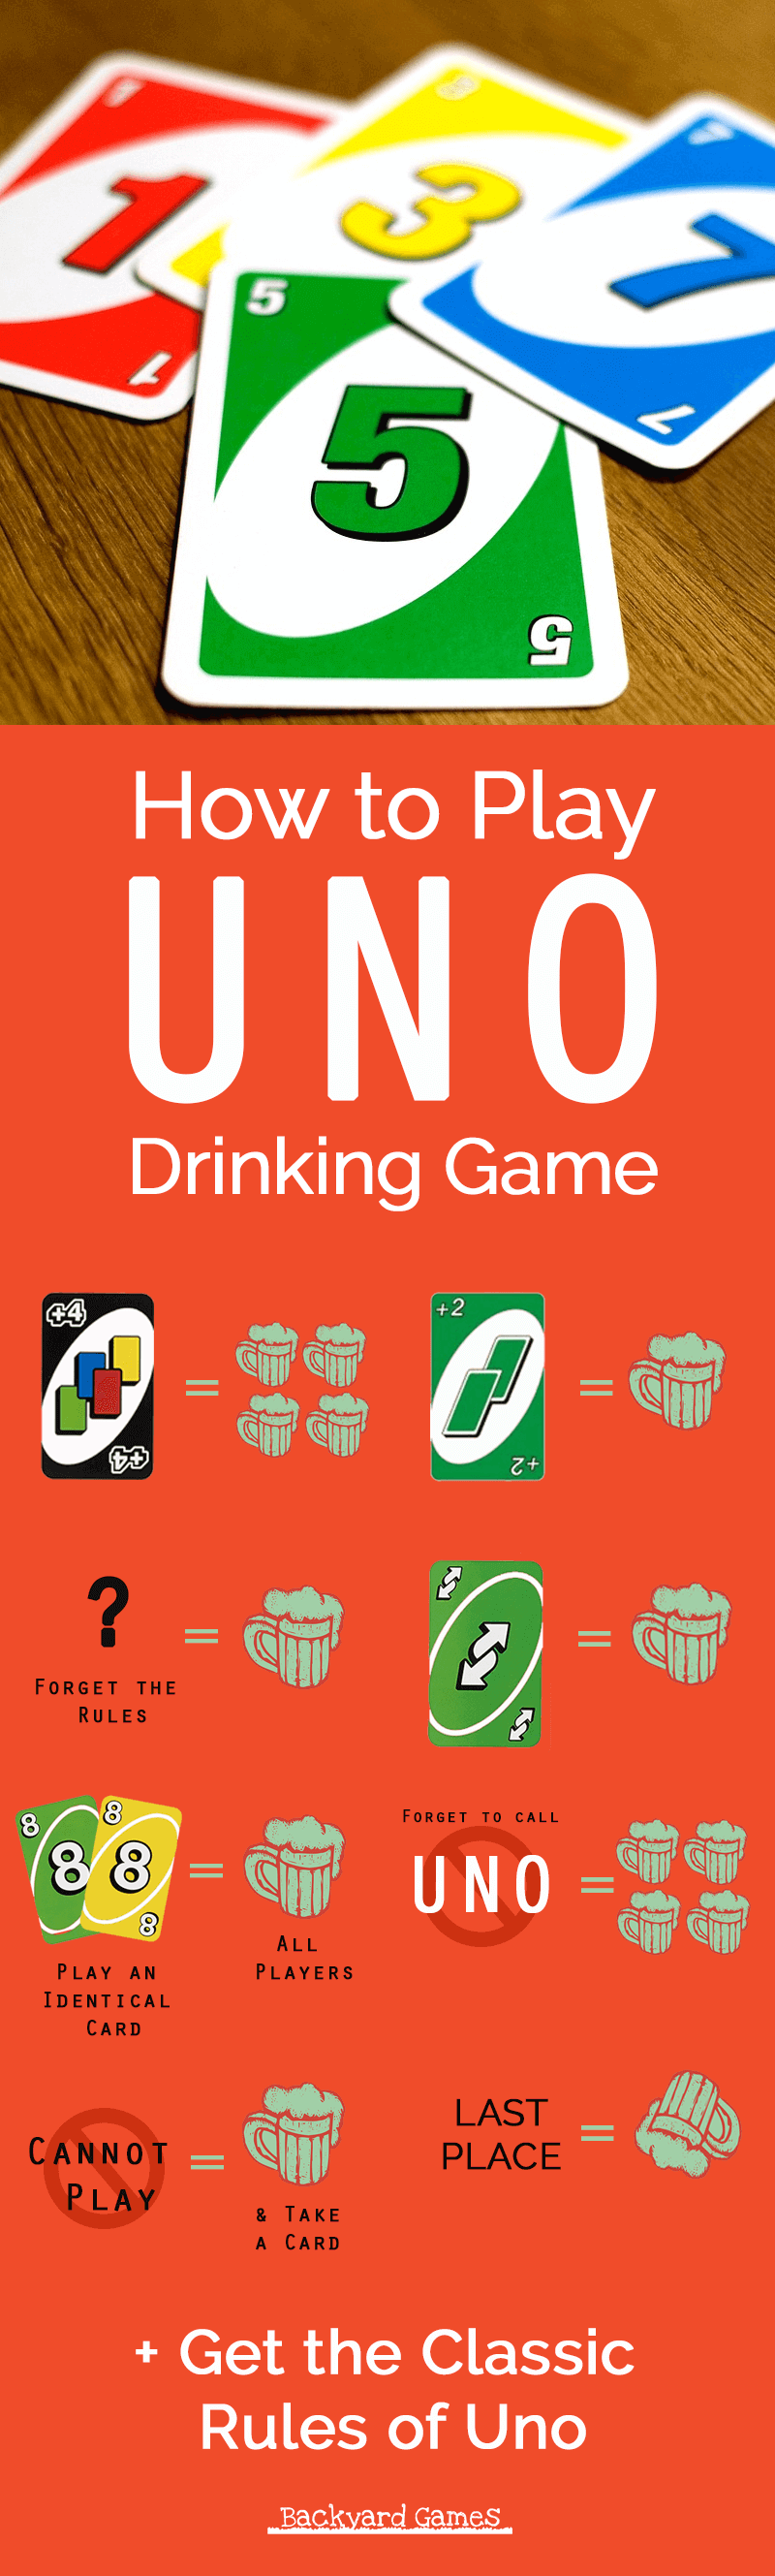 How to Play Uno Drinking Game